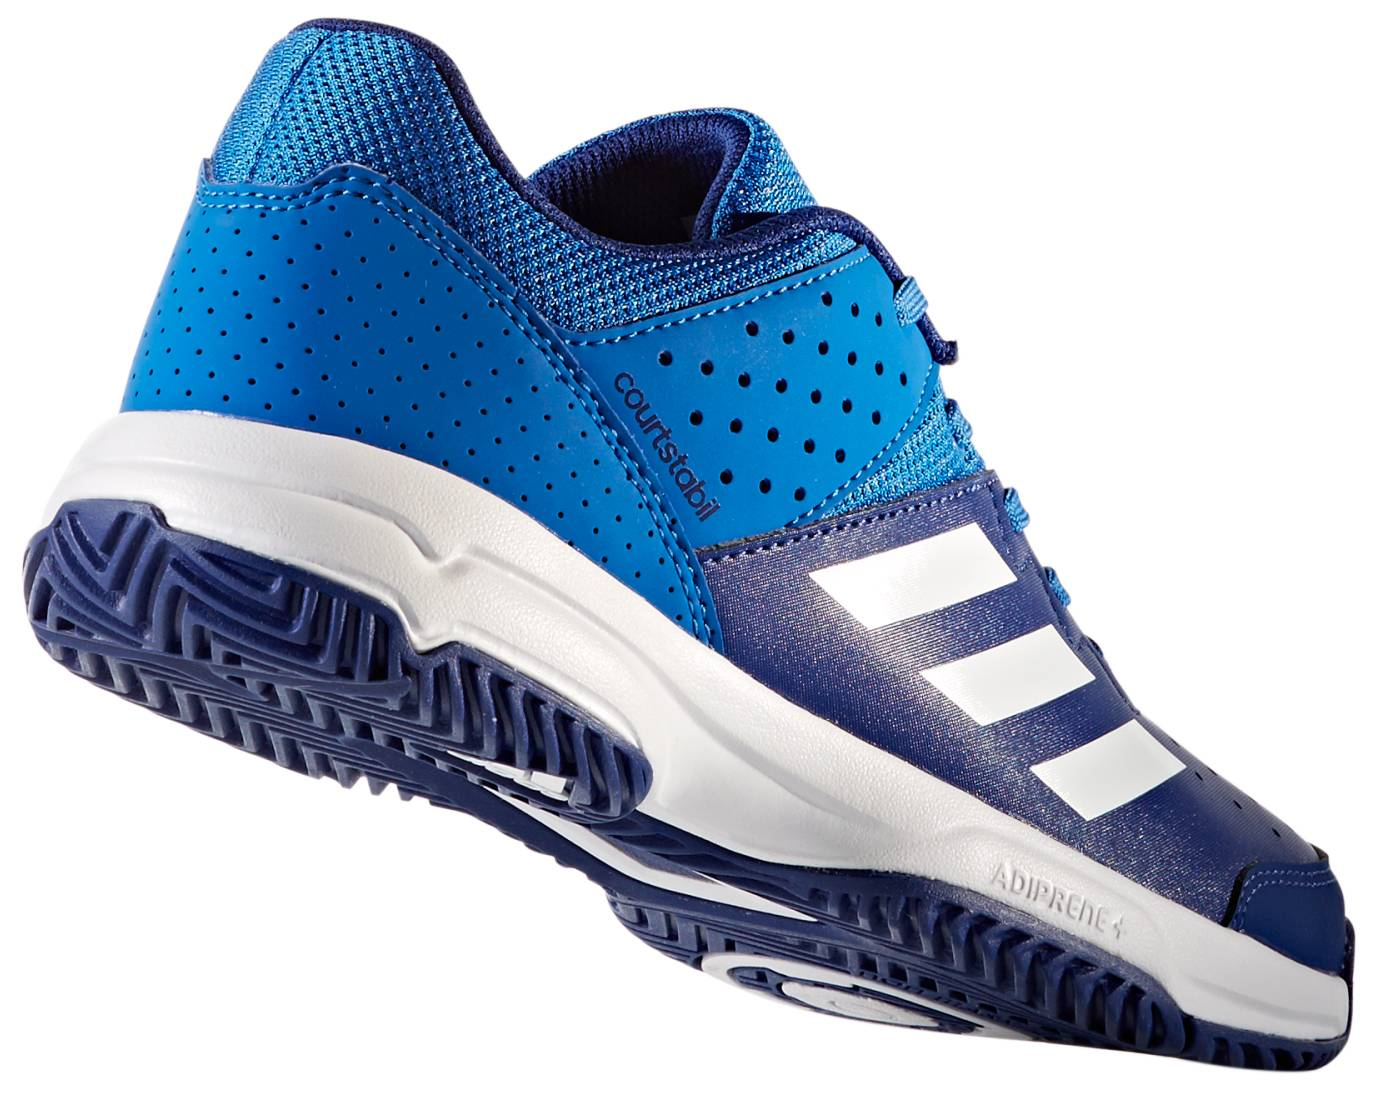 adidas indoor hockey shoes-destroyers.org ce41d60f5